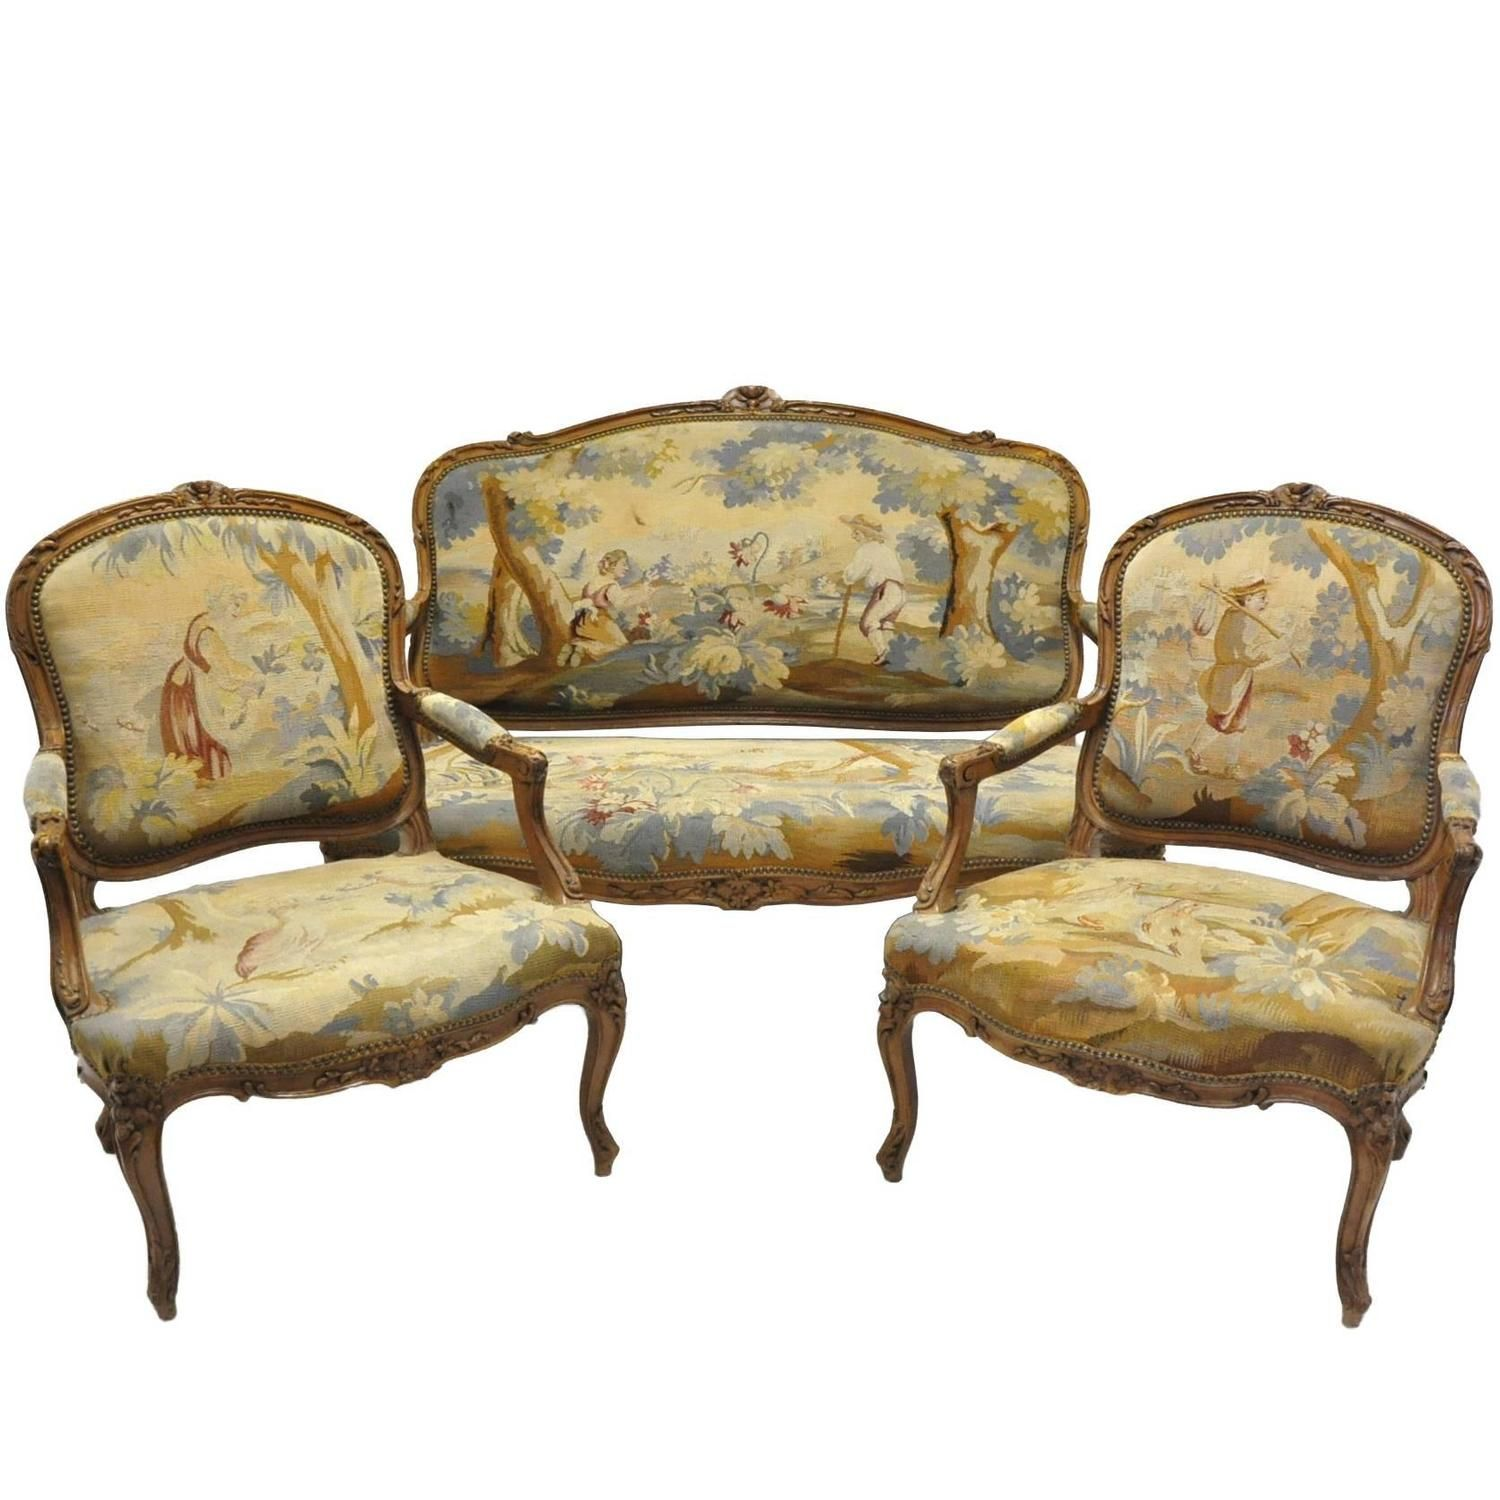 Three-Piece Antique Louis XV Salon Seating Set with Aubusson ...